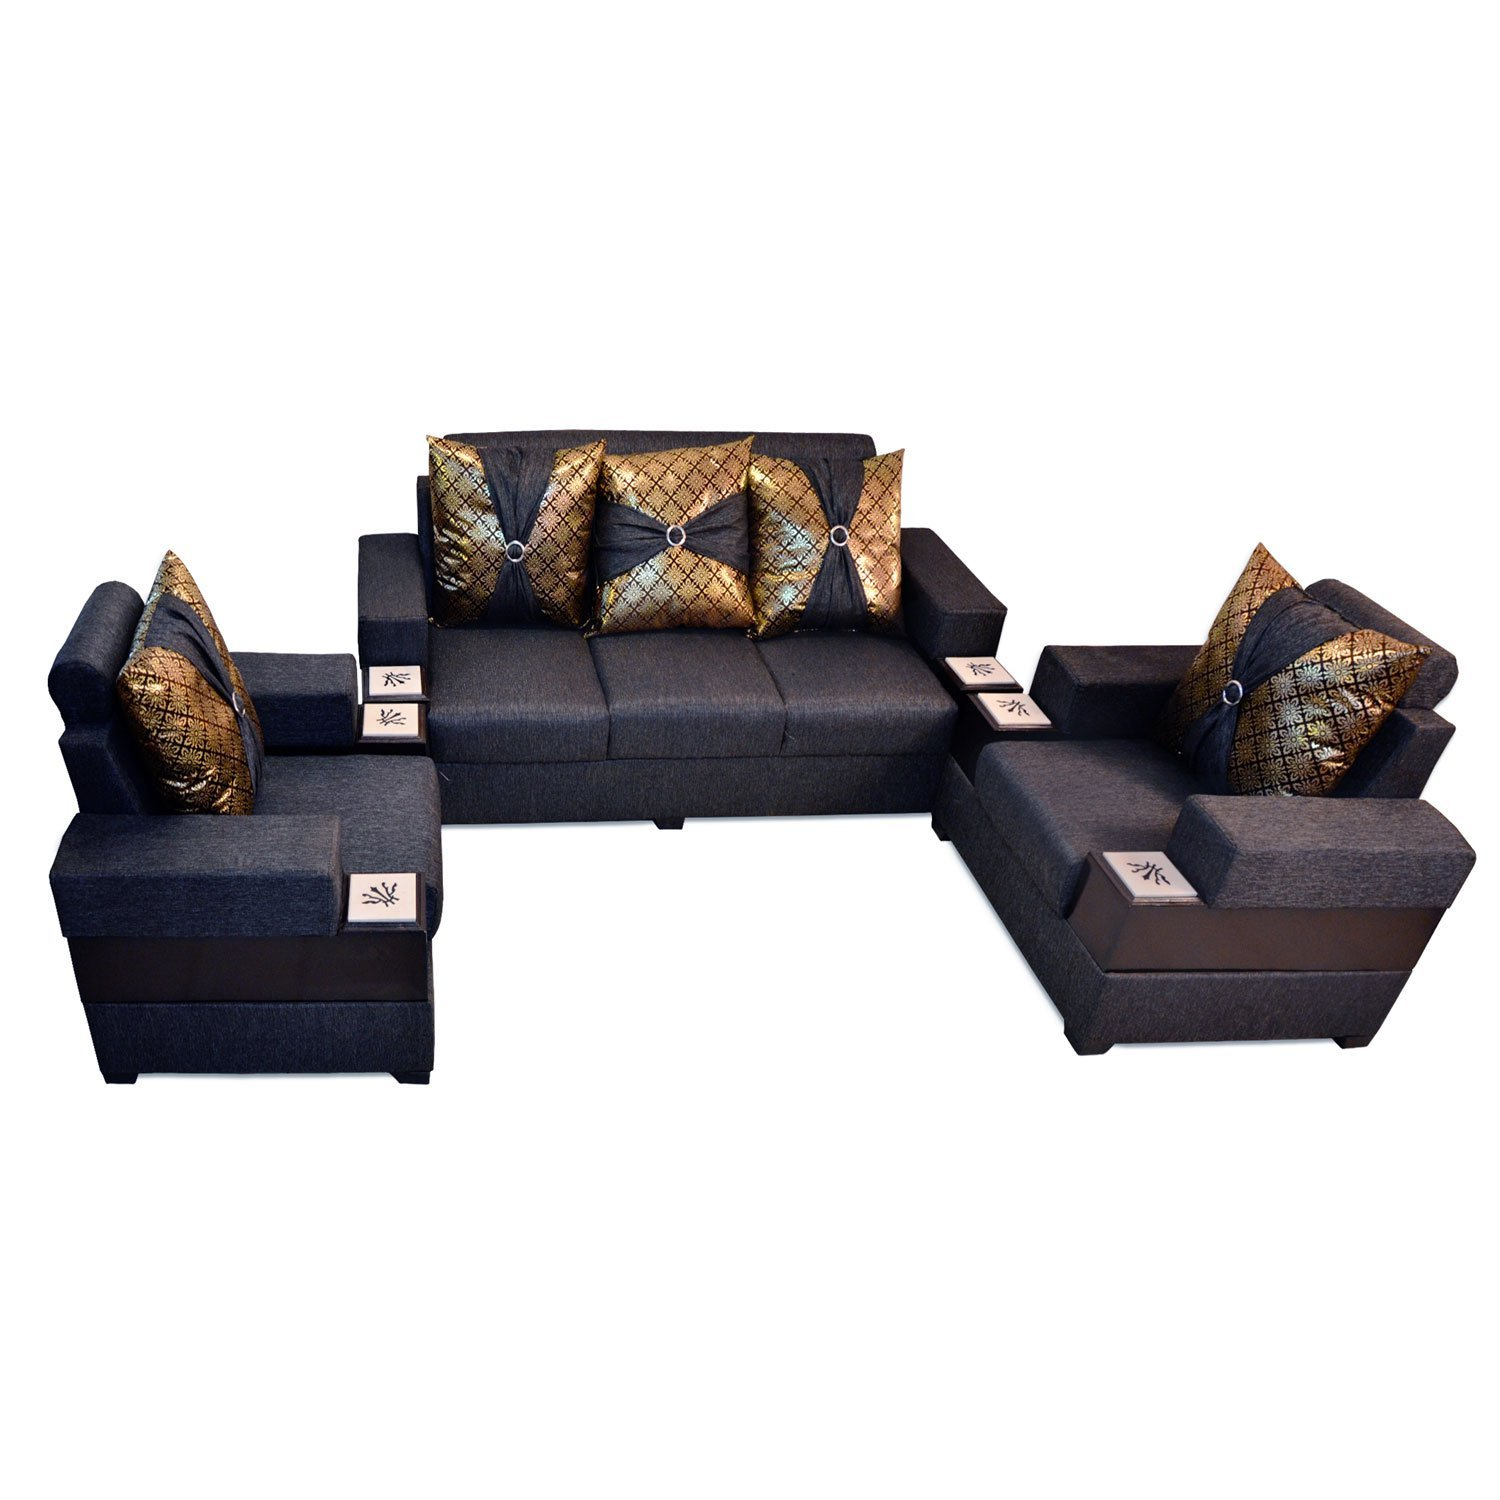 L Shape Sofa Set Kirti Nagar Sofa Set In Delhi Review Home Co